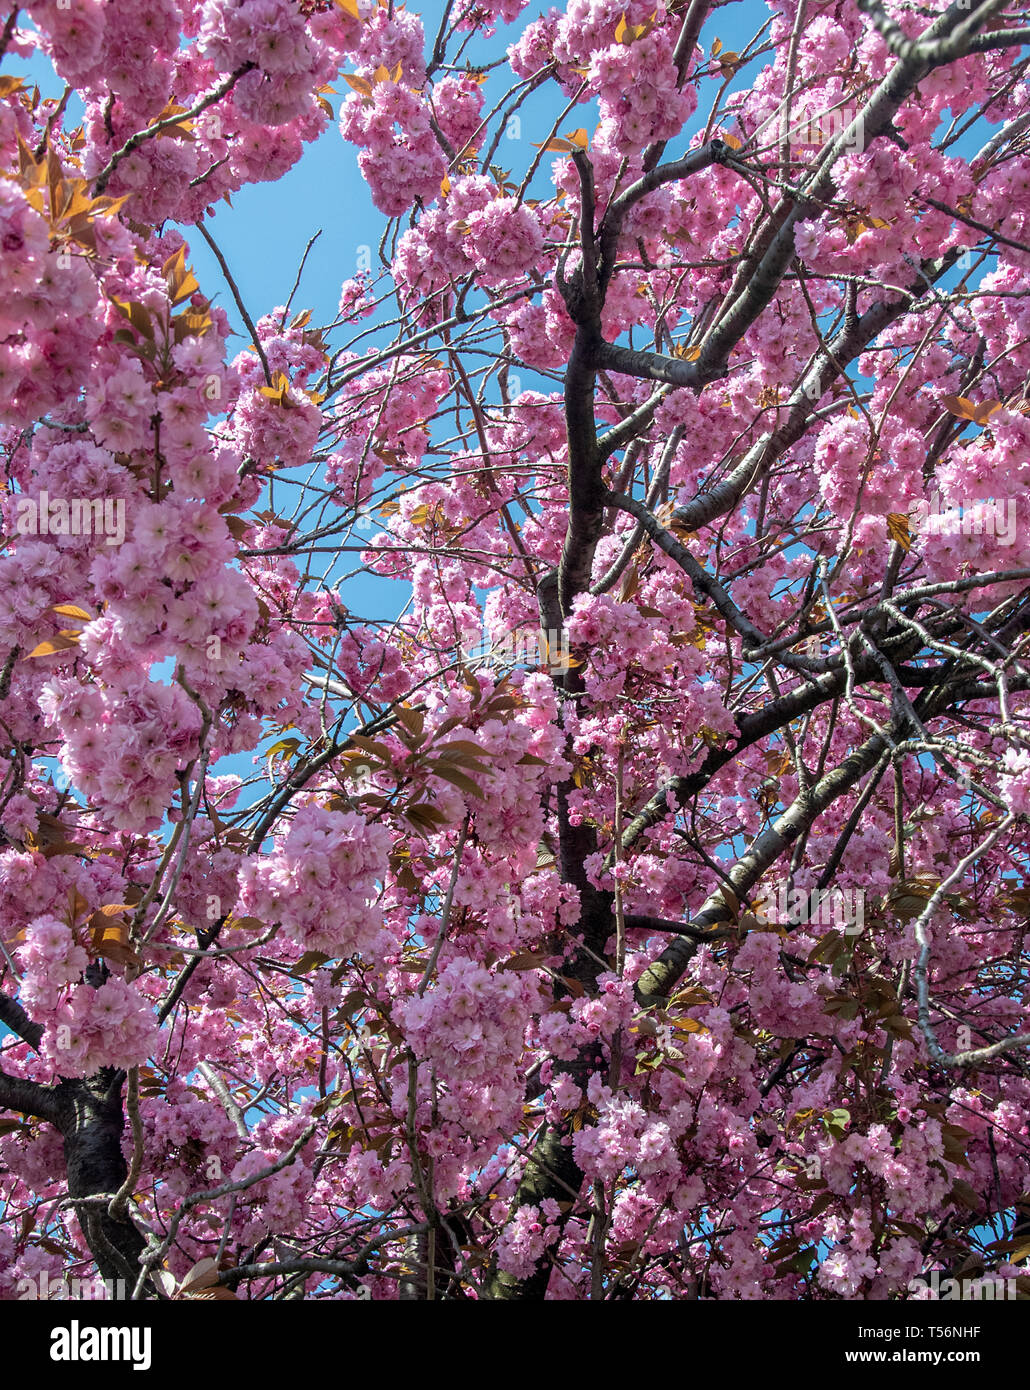 A Close Up Of Cherry Blossom Trees In The Springtime Stock Photo Alamy